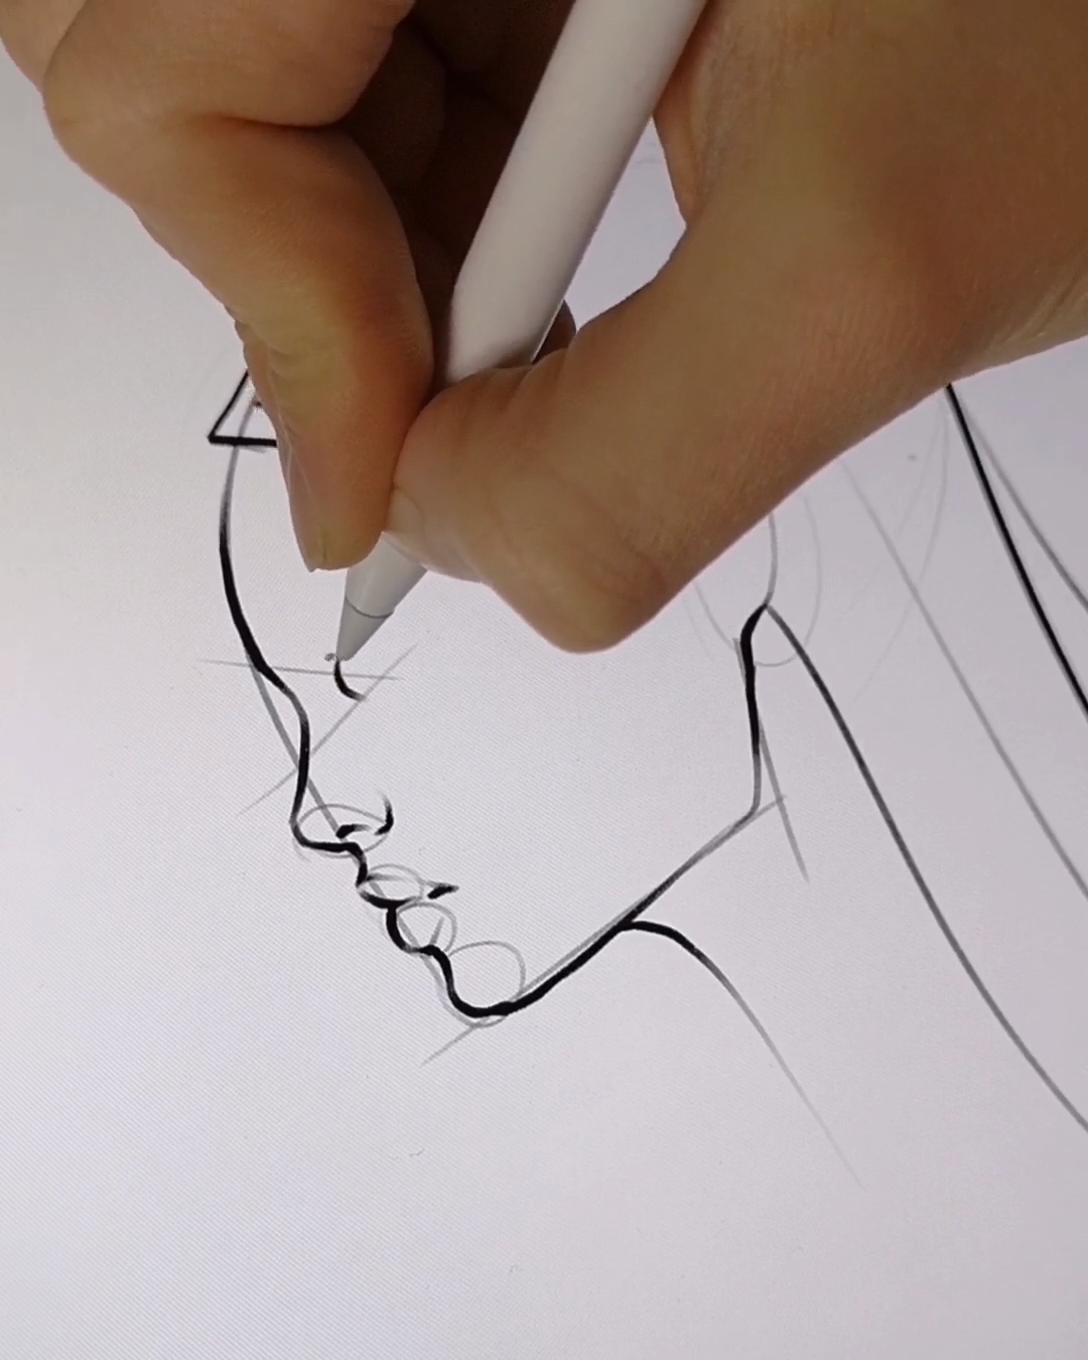 Drawing Side Profile Tutorial on Procreate by AlicjaNai,  #AlicjaNai #drawing #pencildrawing #Procreate #Profile #Side #Tutorial